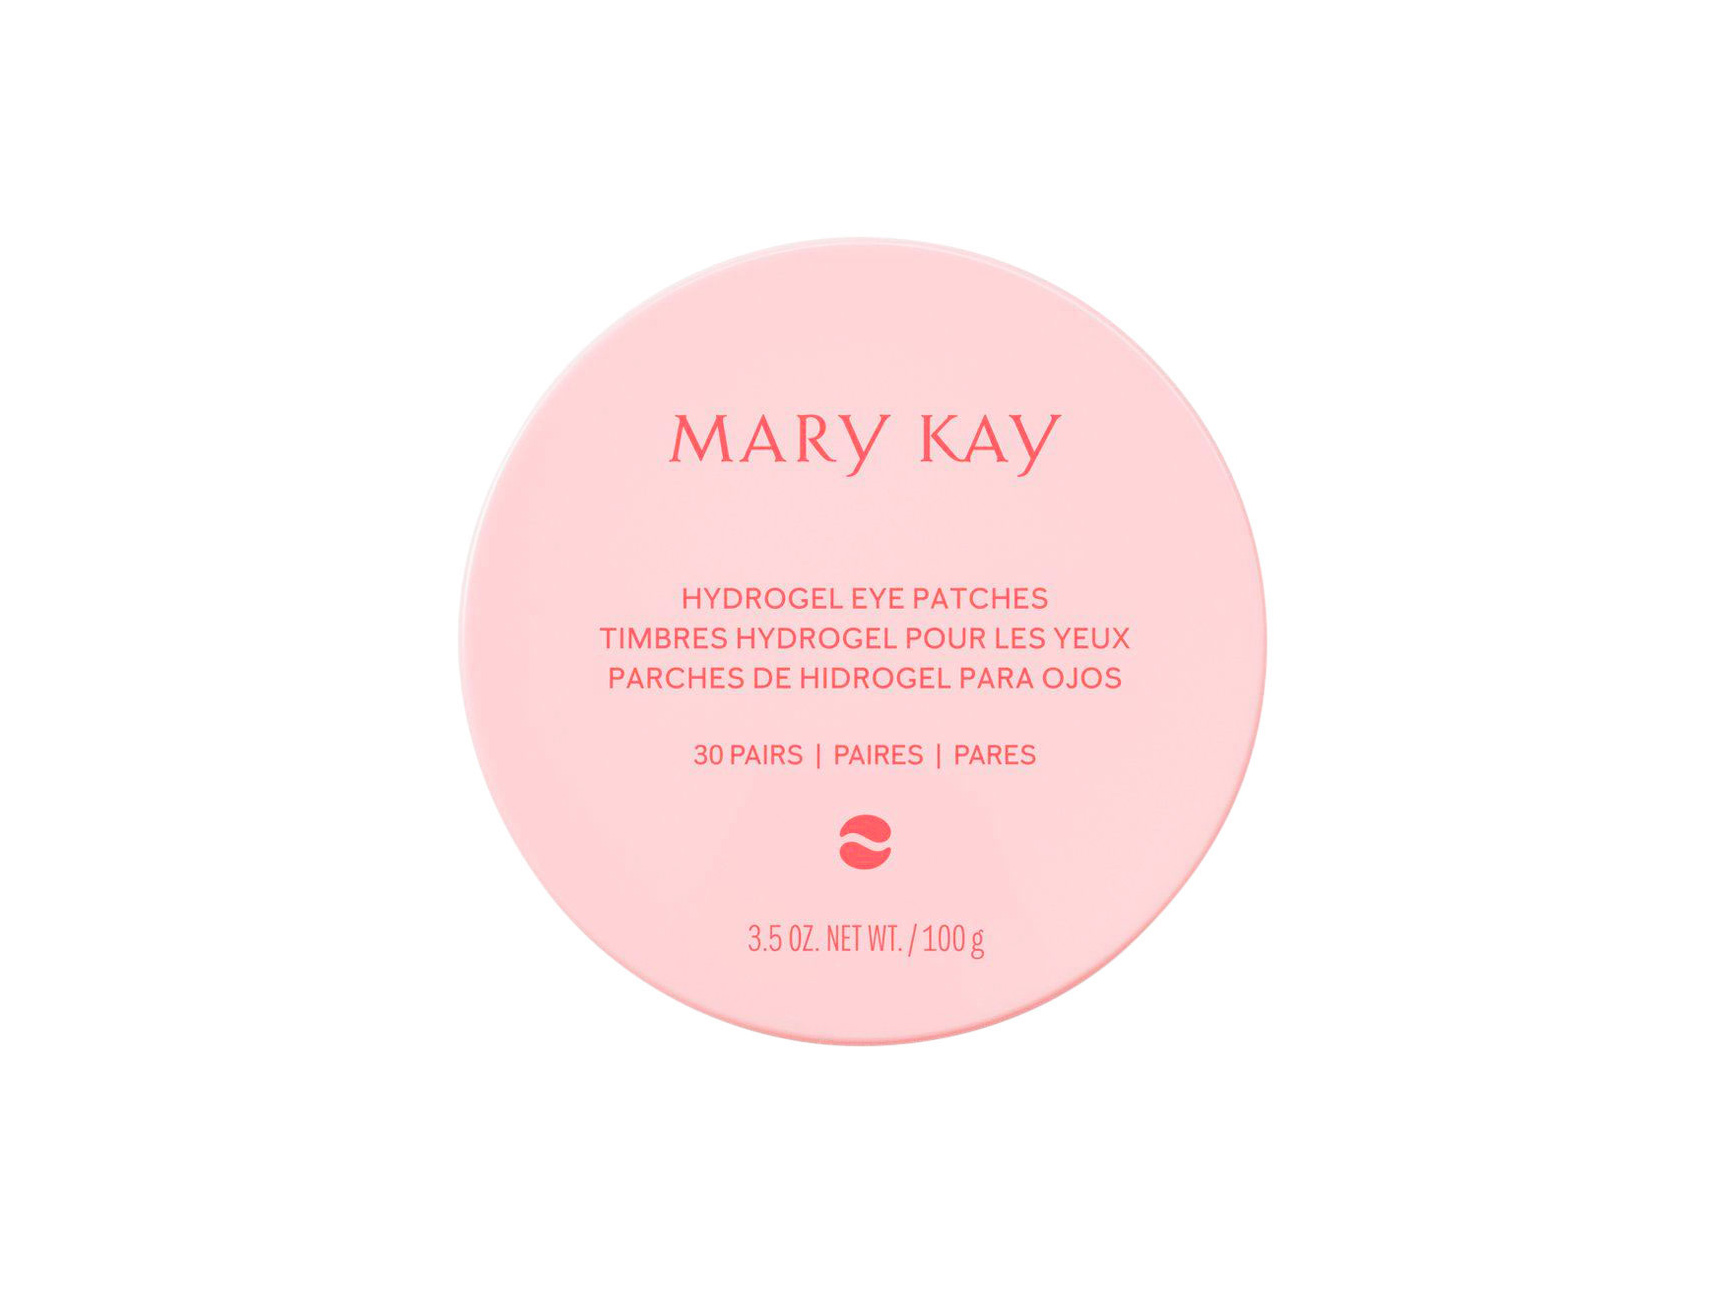 Mary Kay Hydrogel Eye Patches